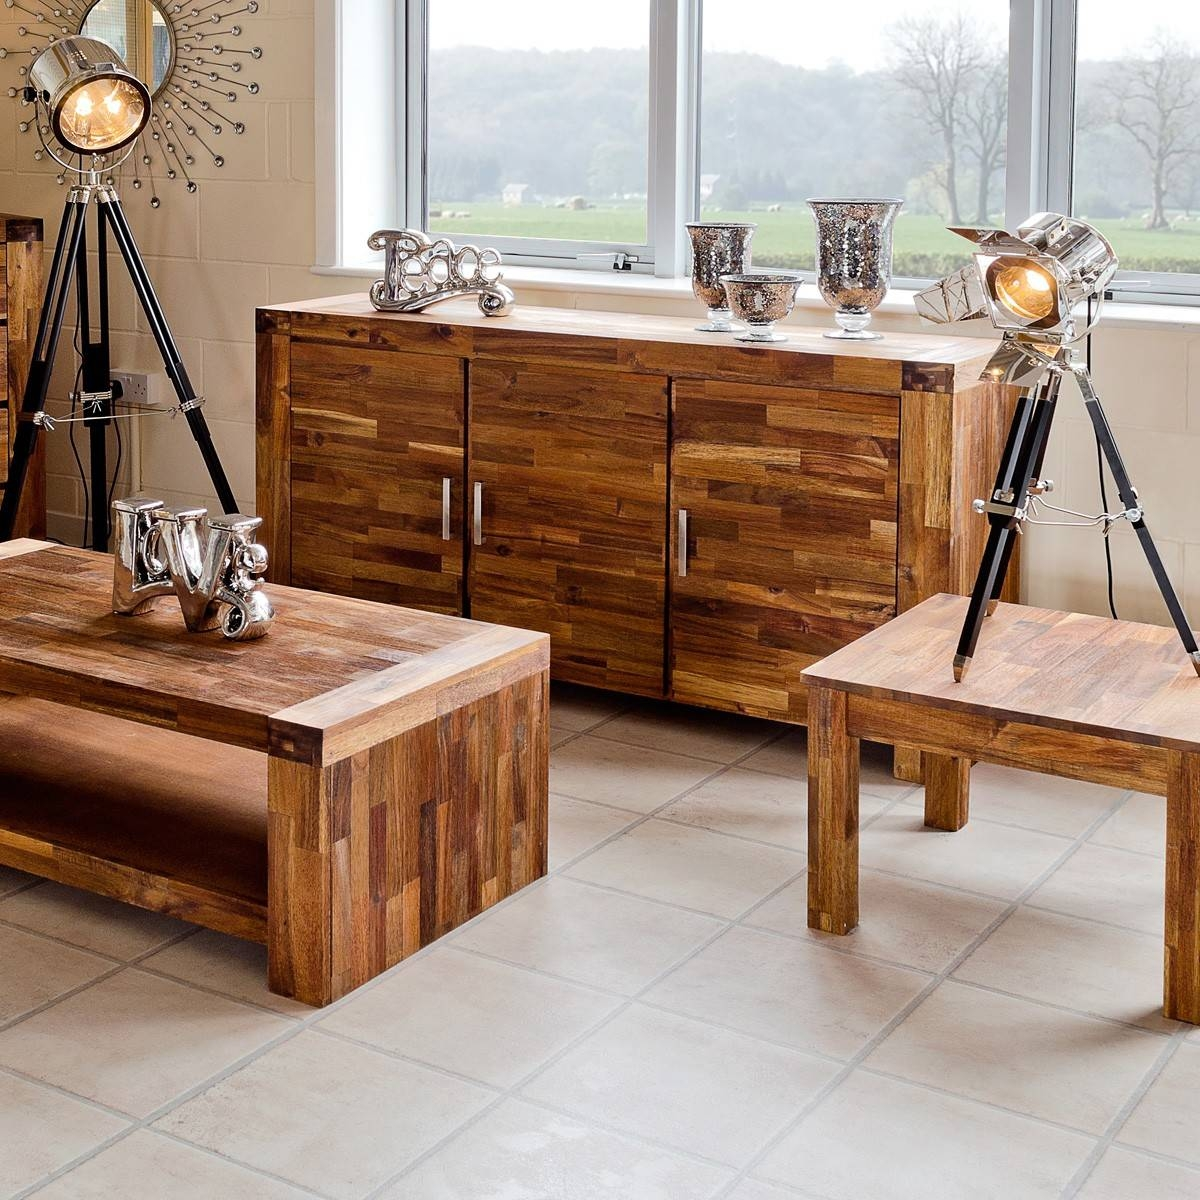 Sideboards. Stunning Wooden Sideboard: Wooden-Sideboard-Small in Small Dark Wood Sideboards (Image 26 of 30)